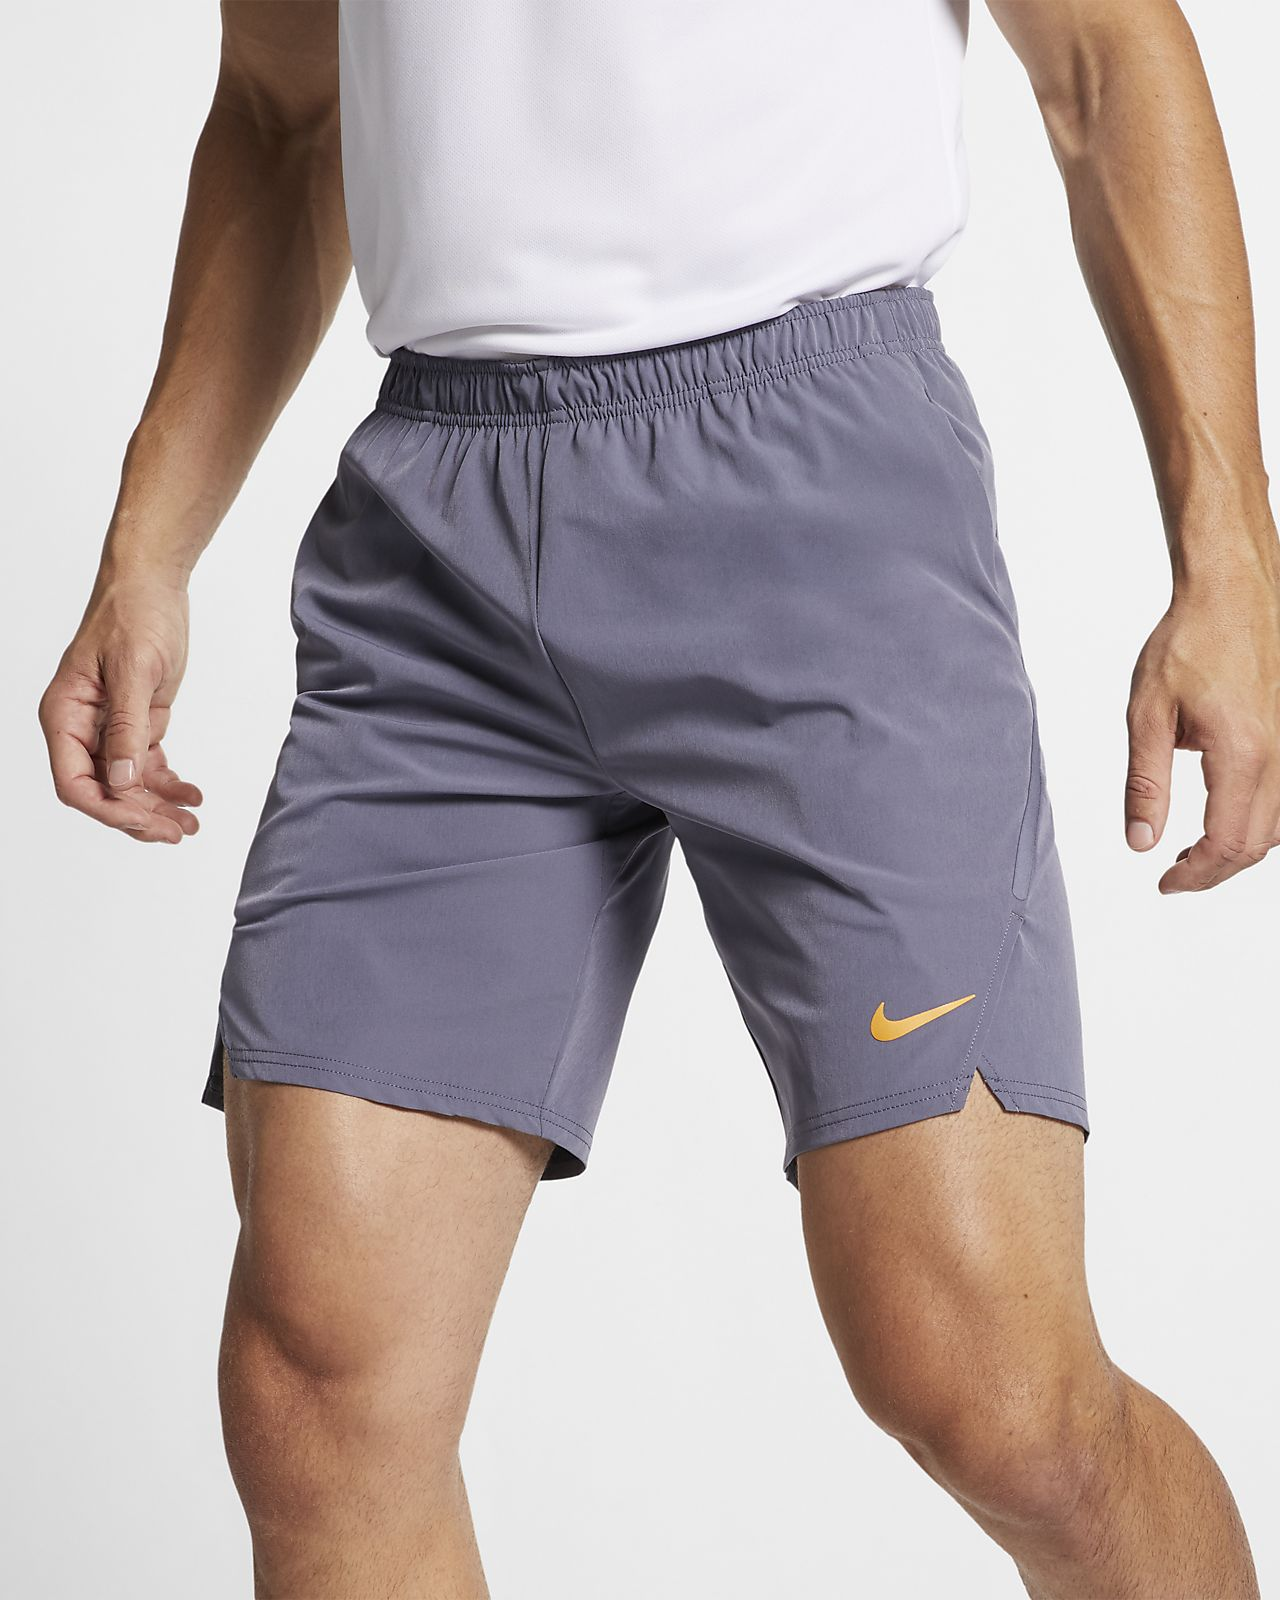 NikeCourt Flex Ace Men's Tennis Shorts